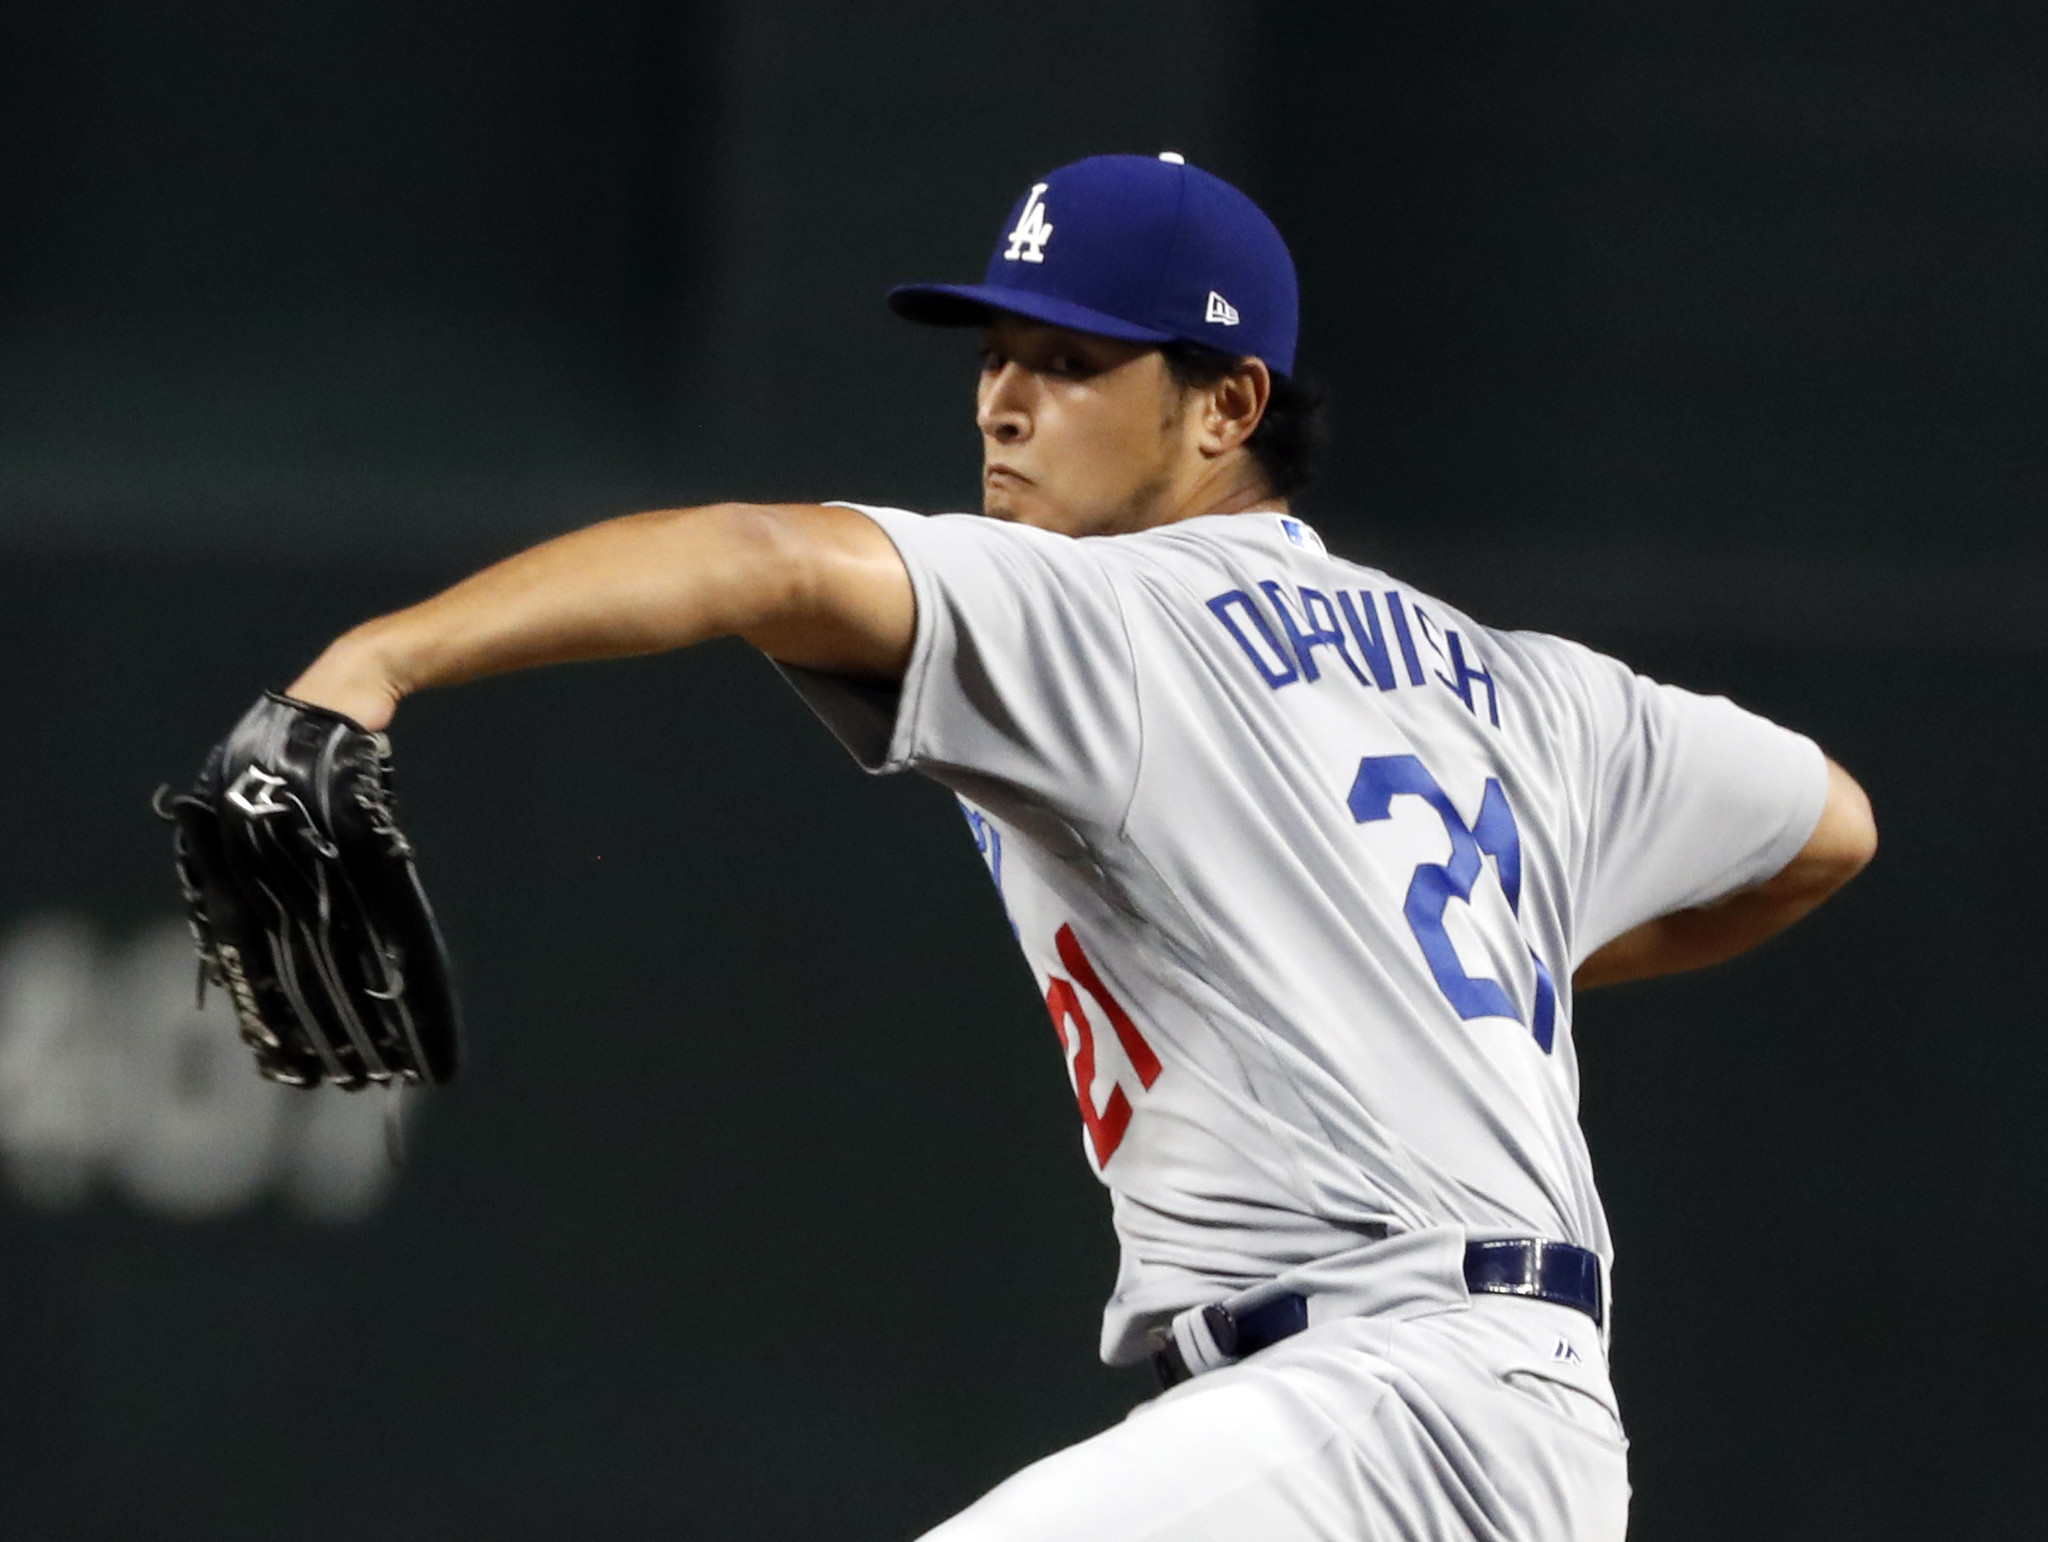 Dodgers-Cubs Game 3 live updates: Dodgers take 6-1 lead in top of the eighth